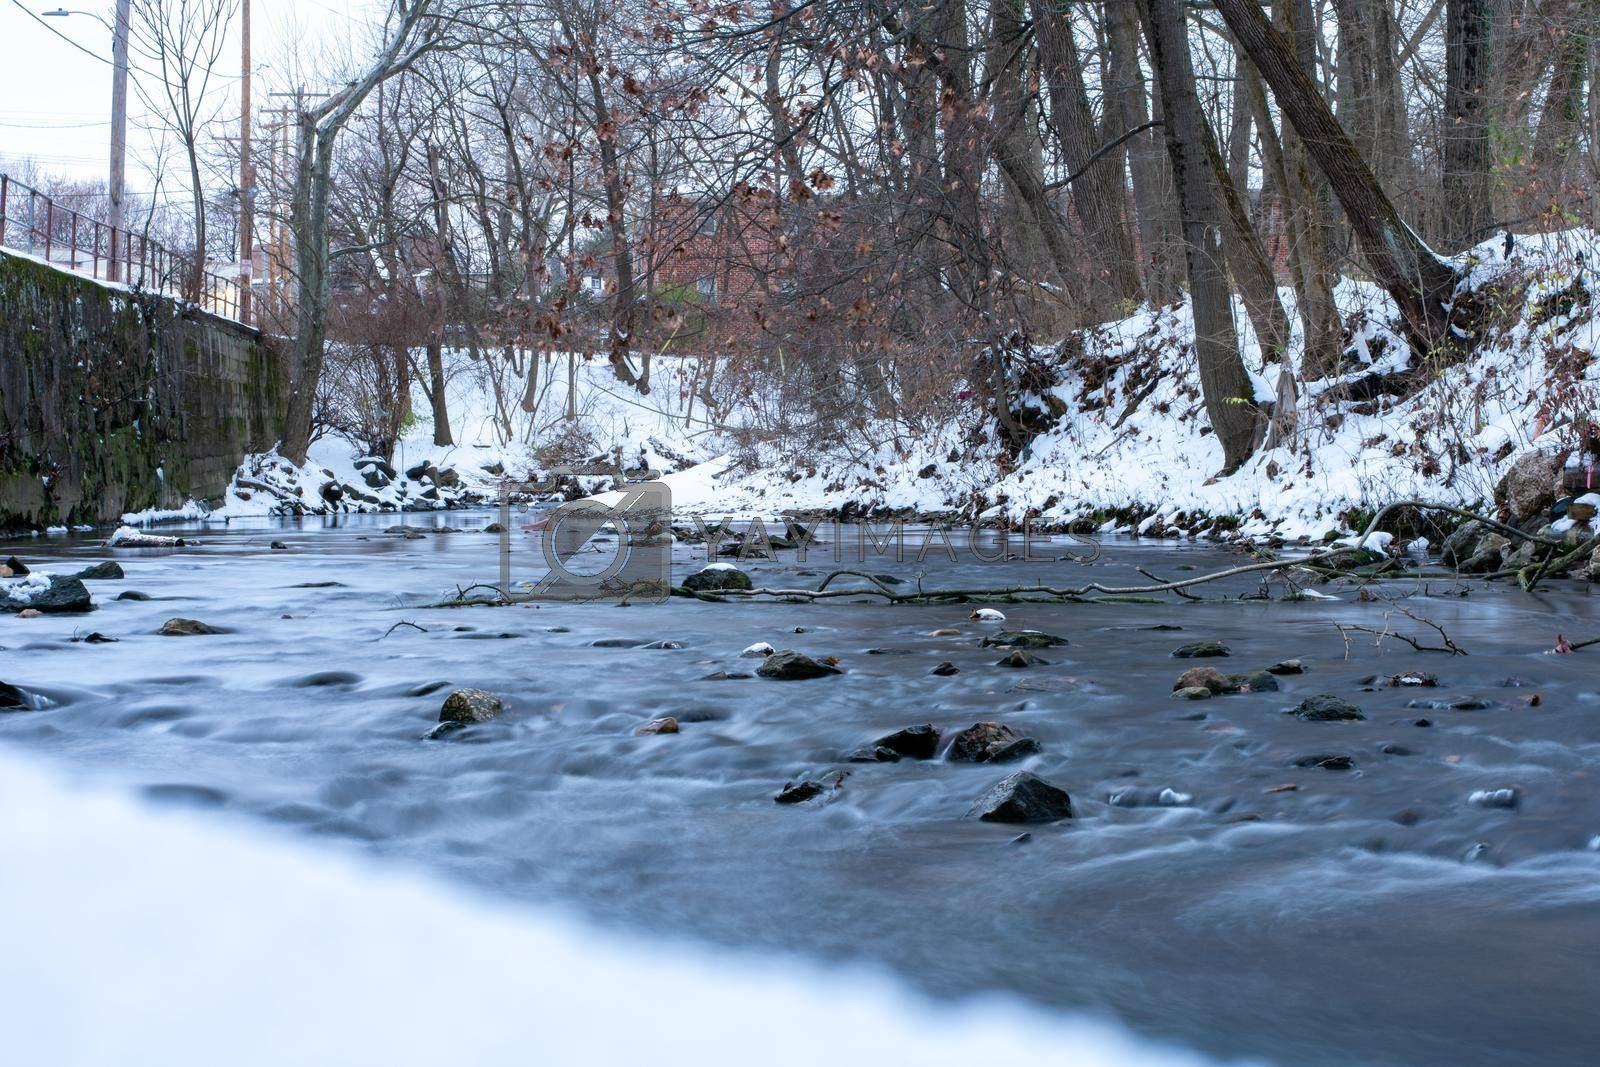 A Long Exposure of a Small Flowing Creek Next to a Snow Covered Bank With Trees and Foliage